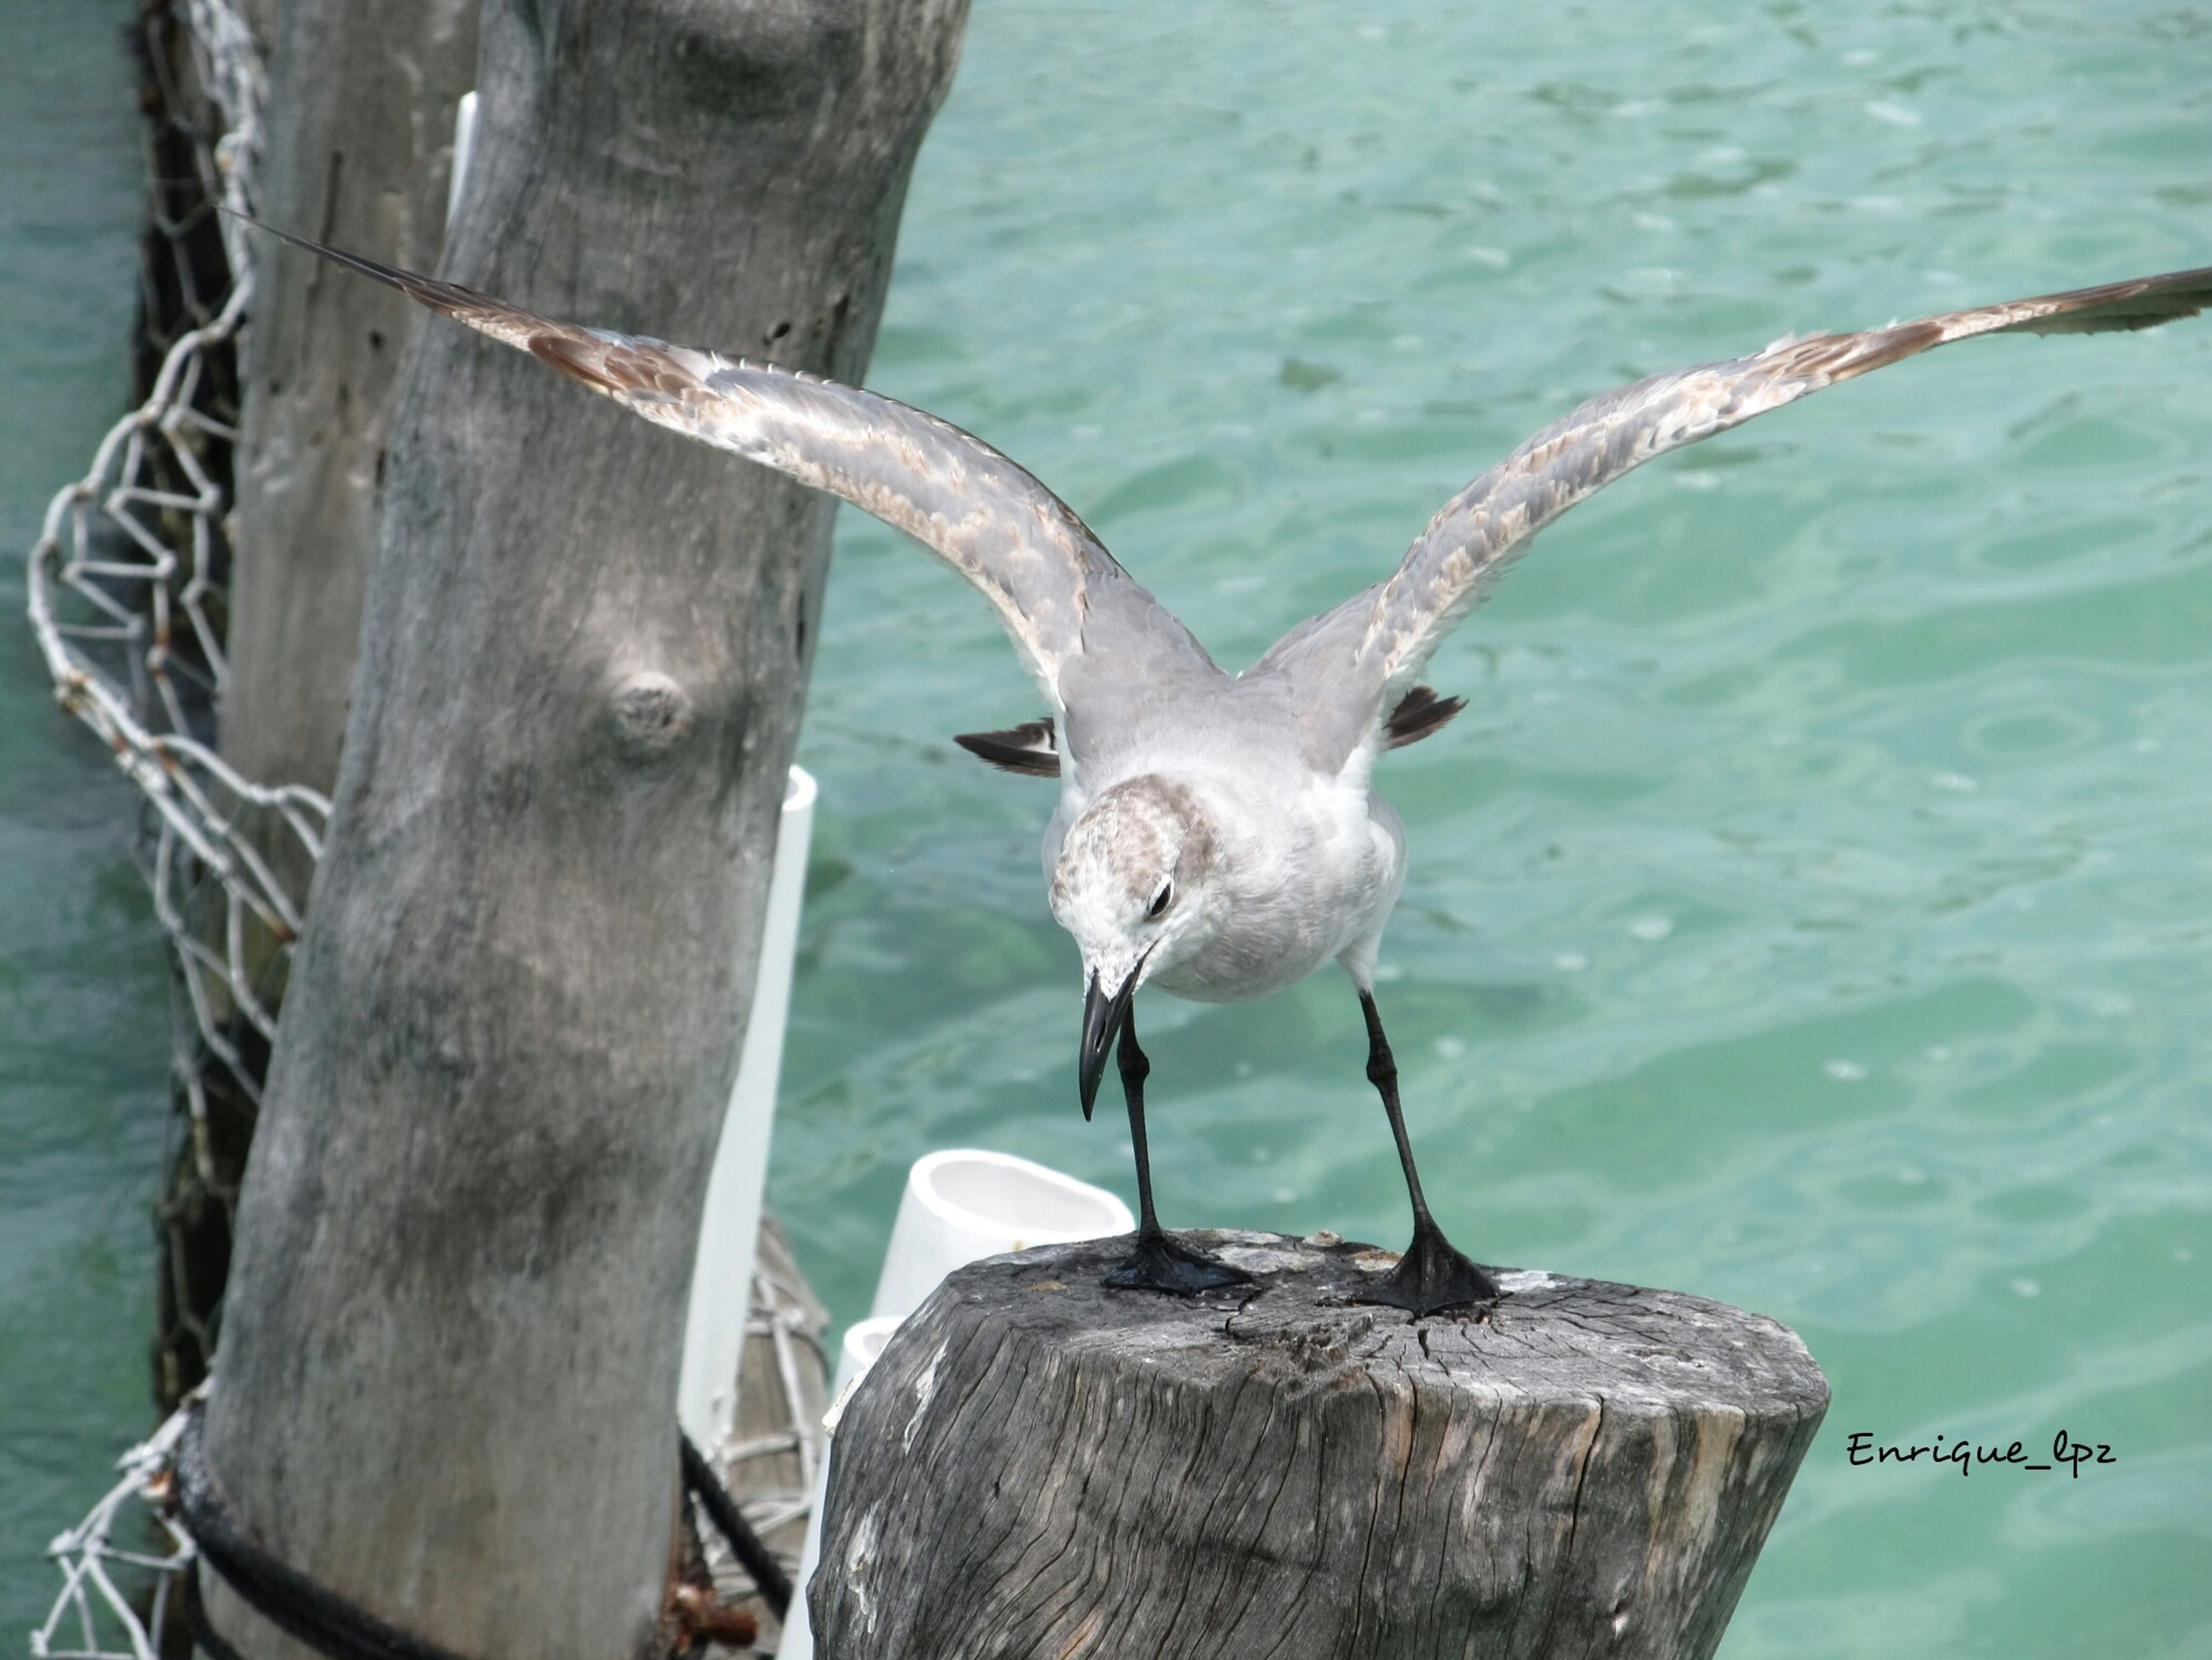 animals in the wild, animal themes, wildlife, water, bird, one animal, perching, sea, nature, focus on foreground, seagull, day, wood - material, wooden post, outdoors, close-up, no people, beauty in nature, lake, branch